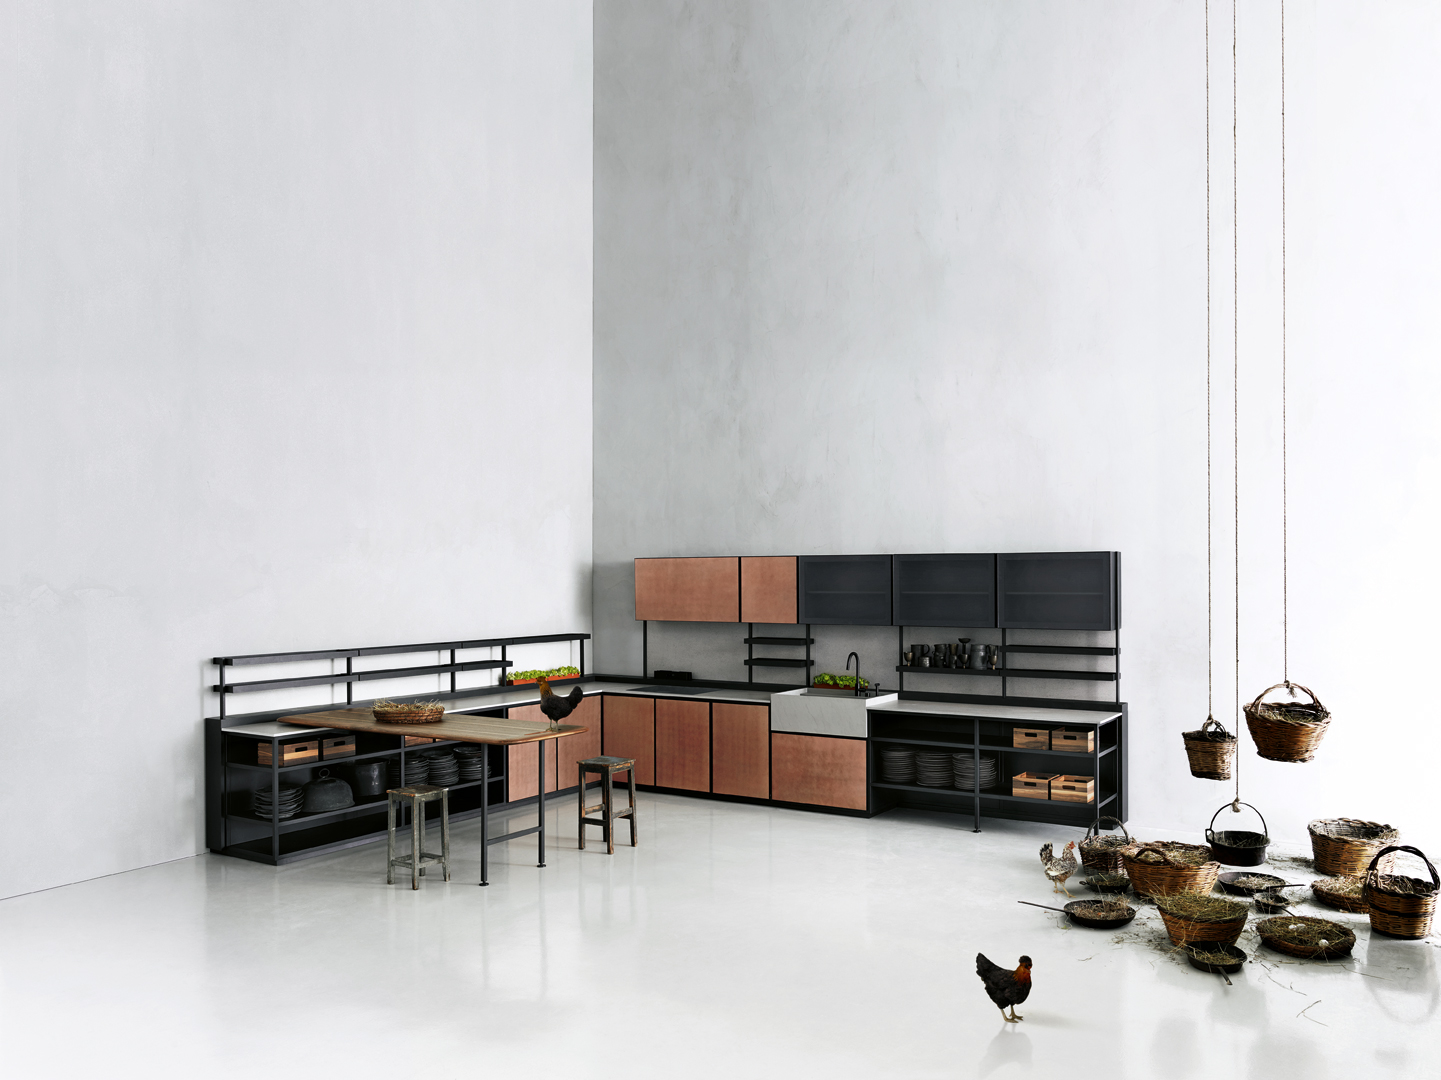 Elisa Ossino Studio — Boffi — Kitchenology 2015